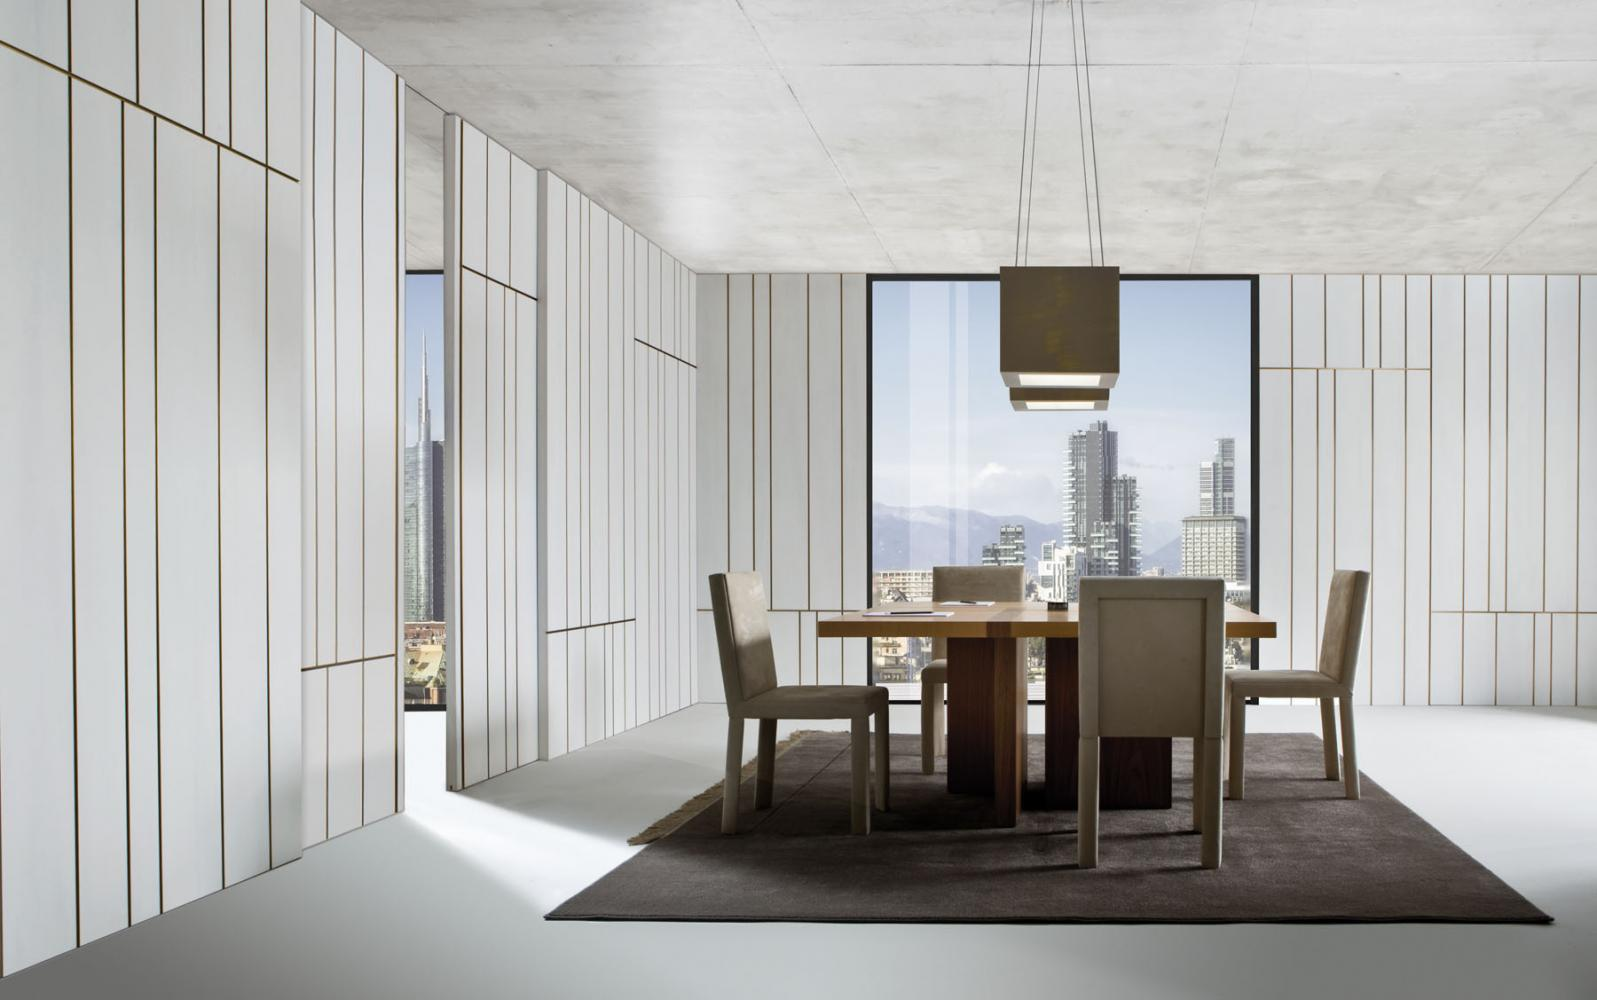 Office wall panels interior High Gloss Wood Line Is Sophisticated Wall Panels System Characterized By Design Of Brass Lines That Elegantly Decorates The Wood Surface Pinterest Office Wall Panels Line Laurameroni